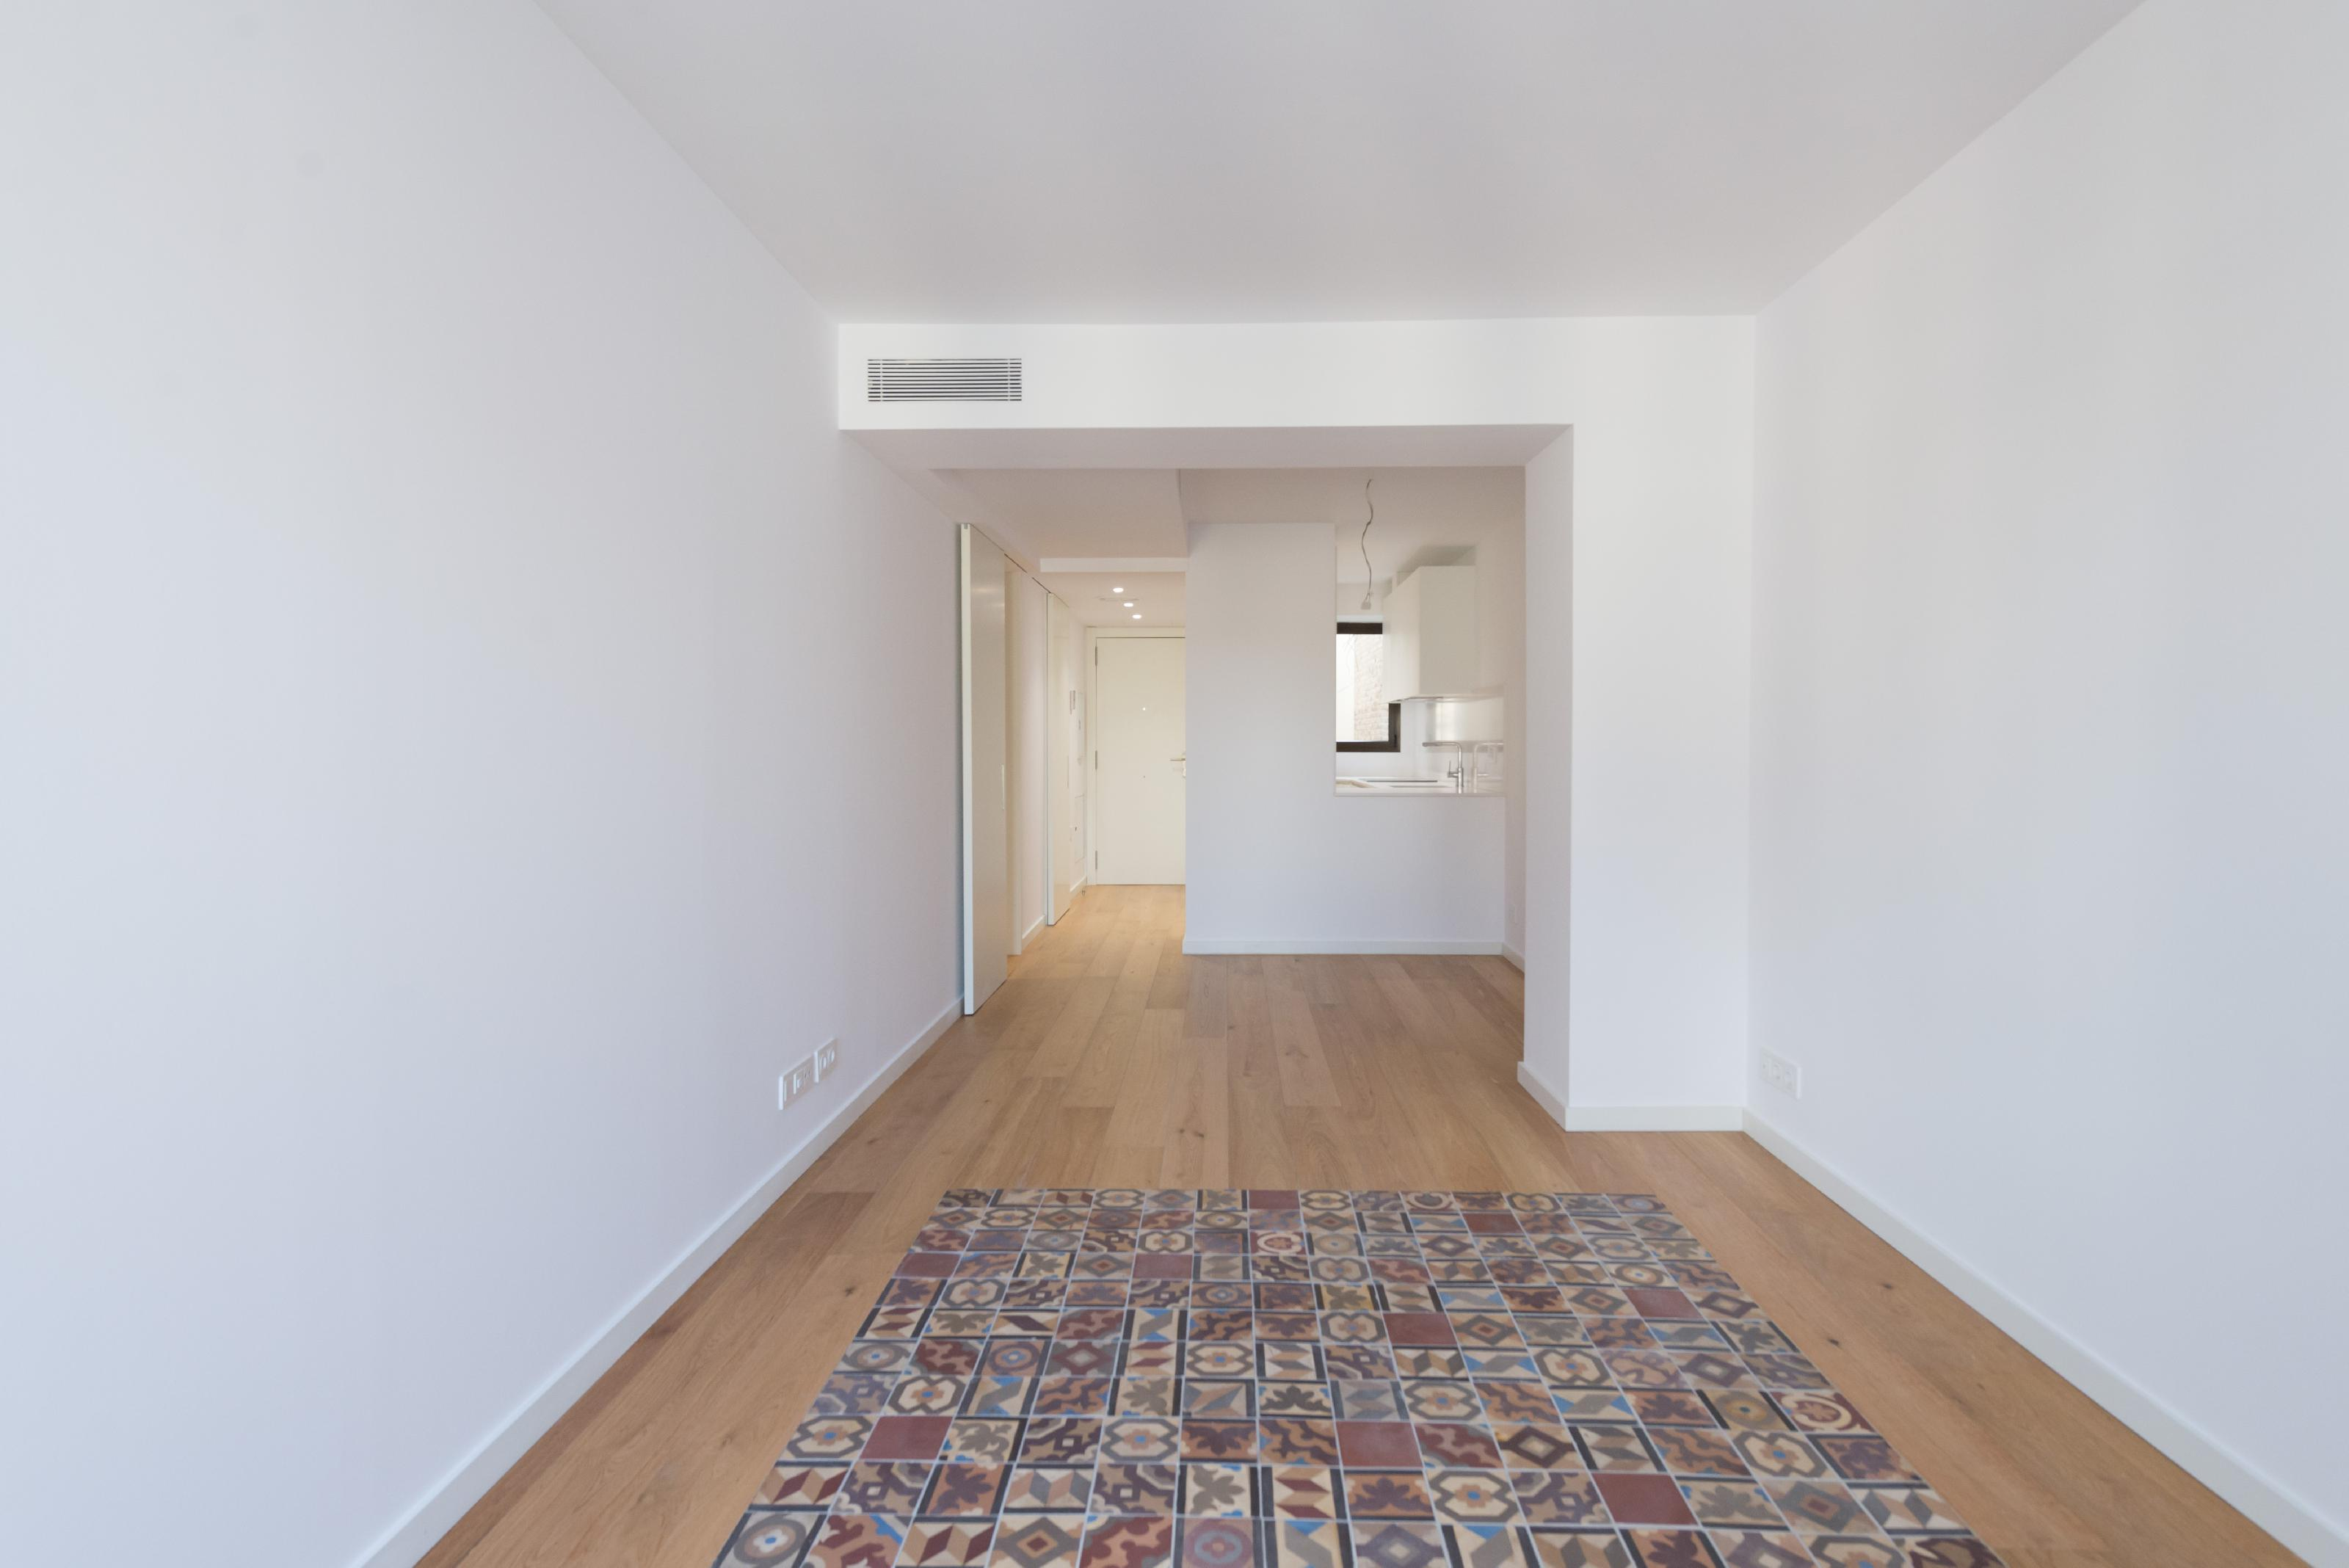 236358 Flat for sale in Eixample, Old Left Eixample 10